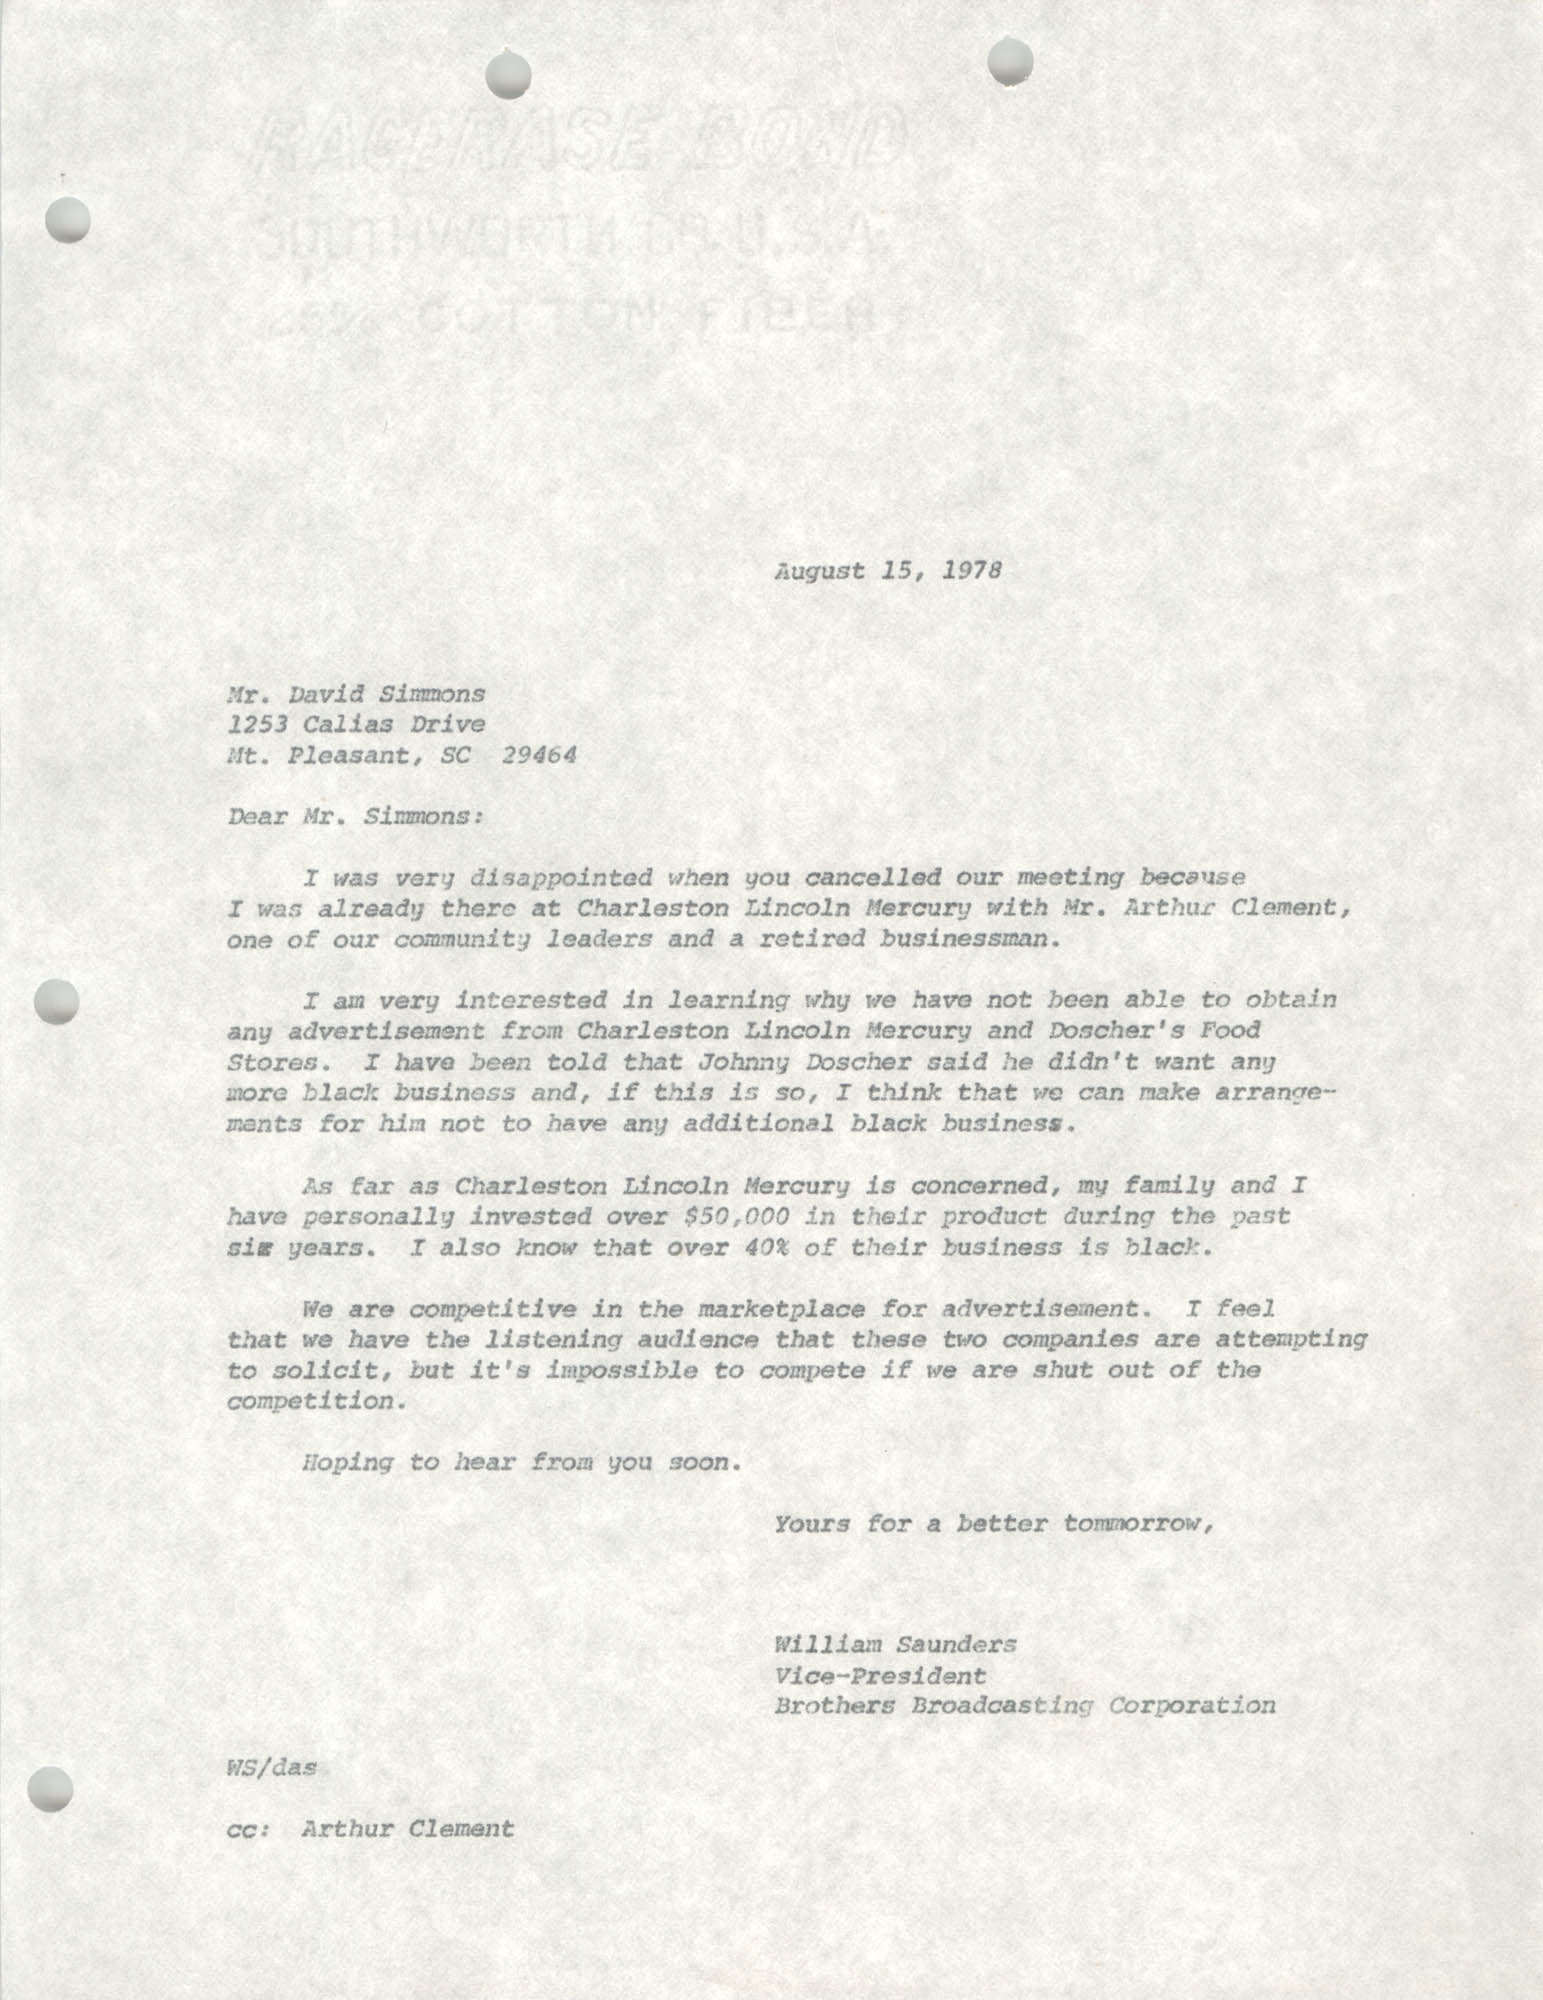 Letter from William Saunders to David Simmons, August 15, 1978